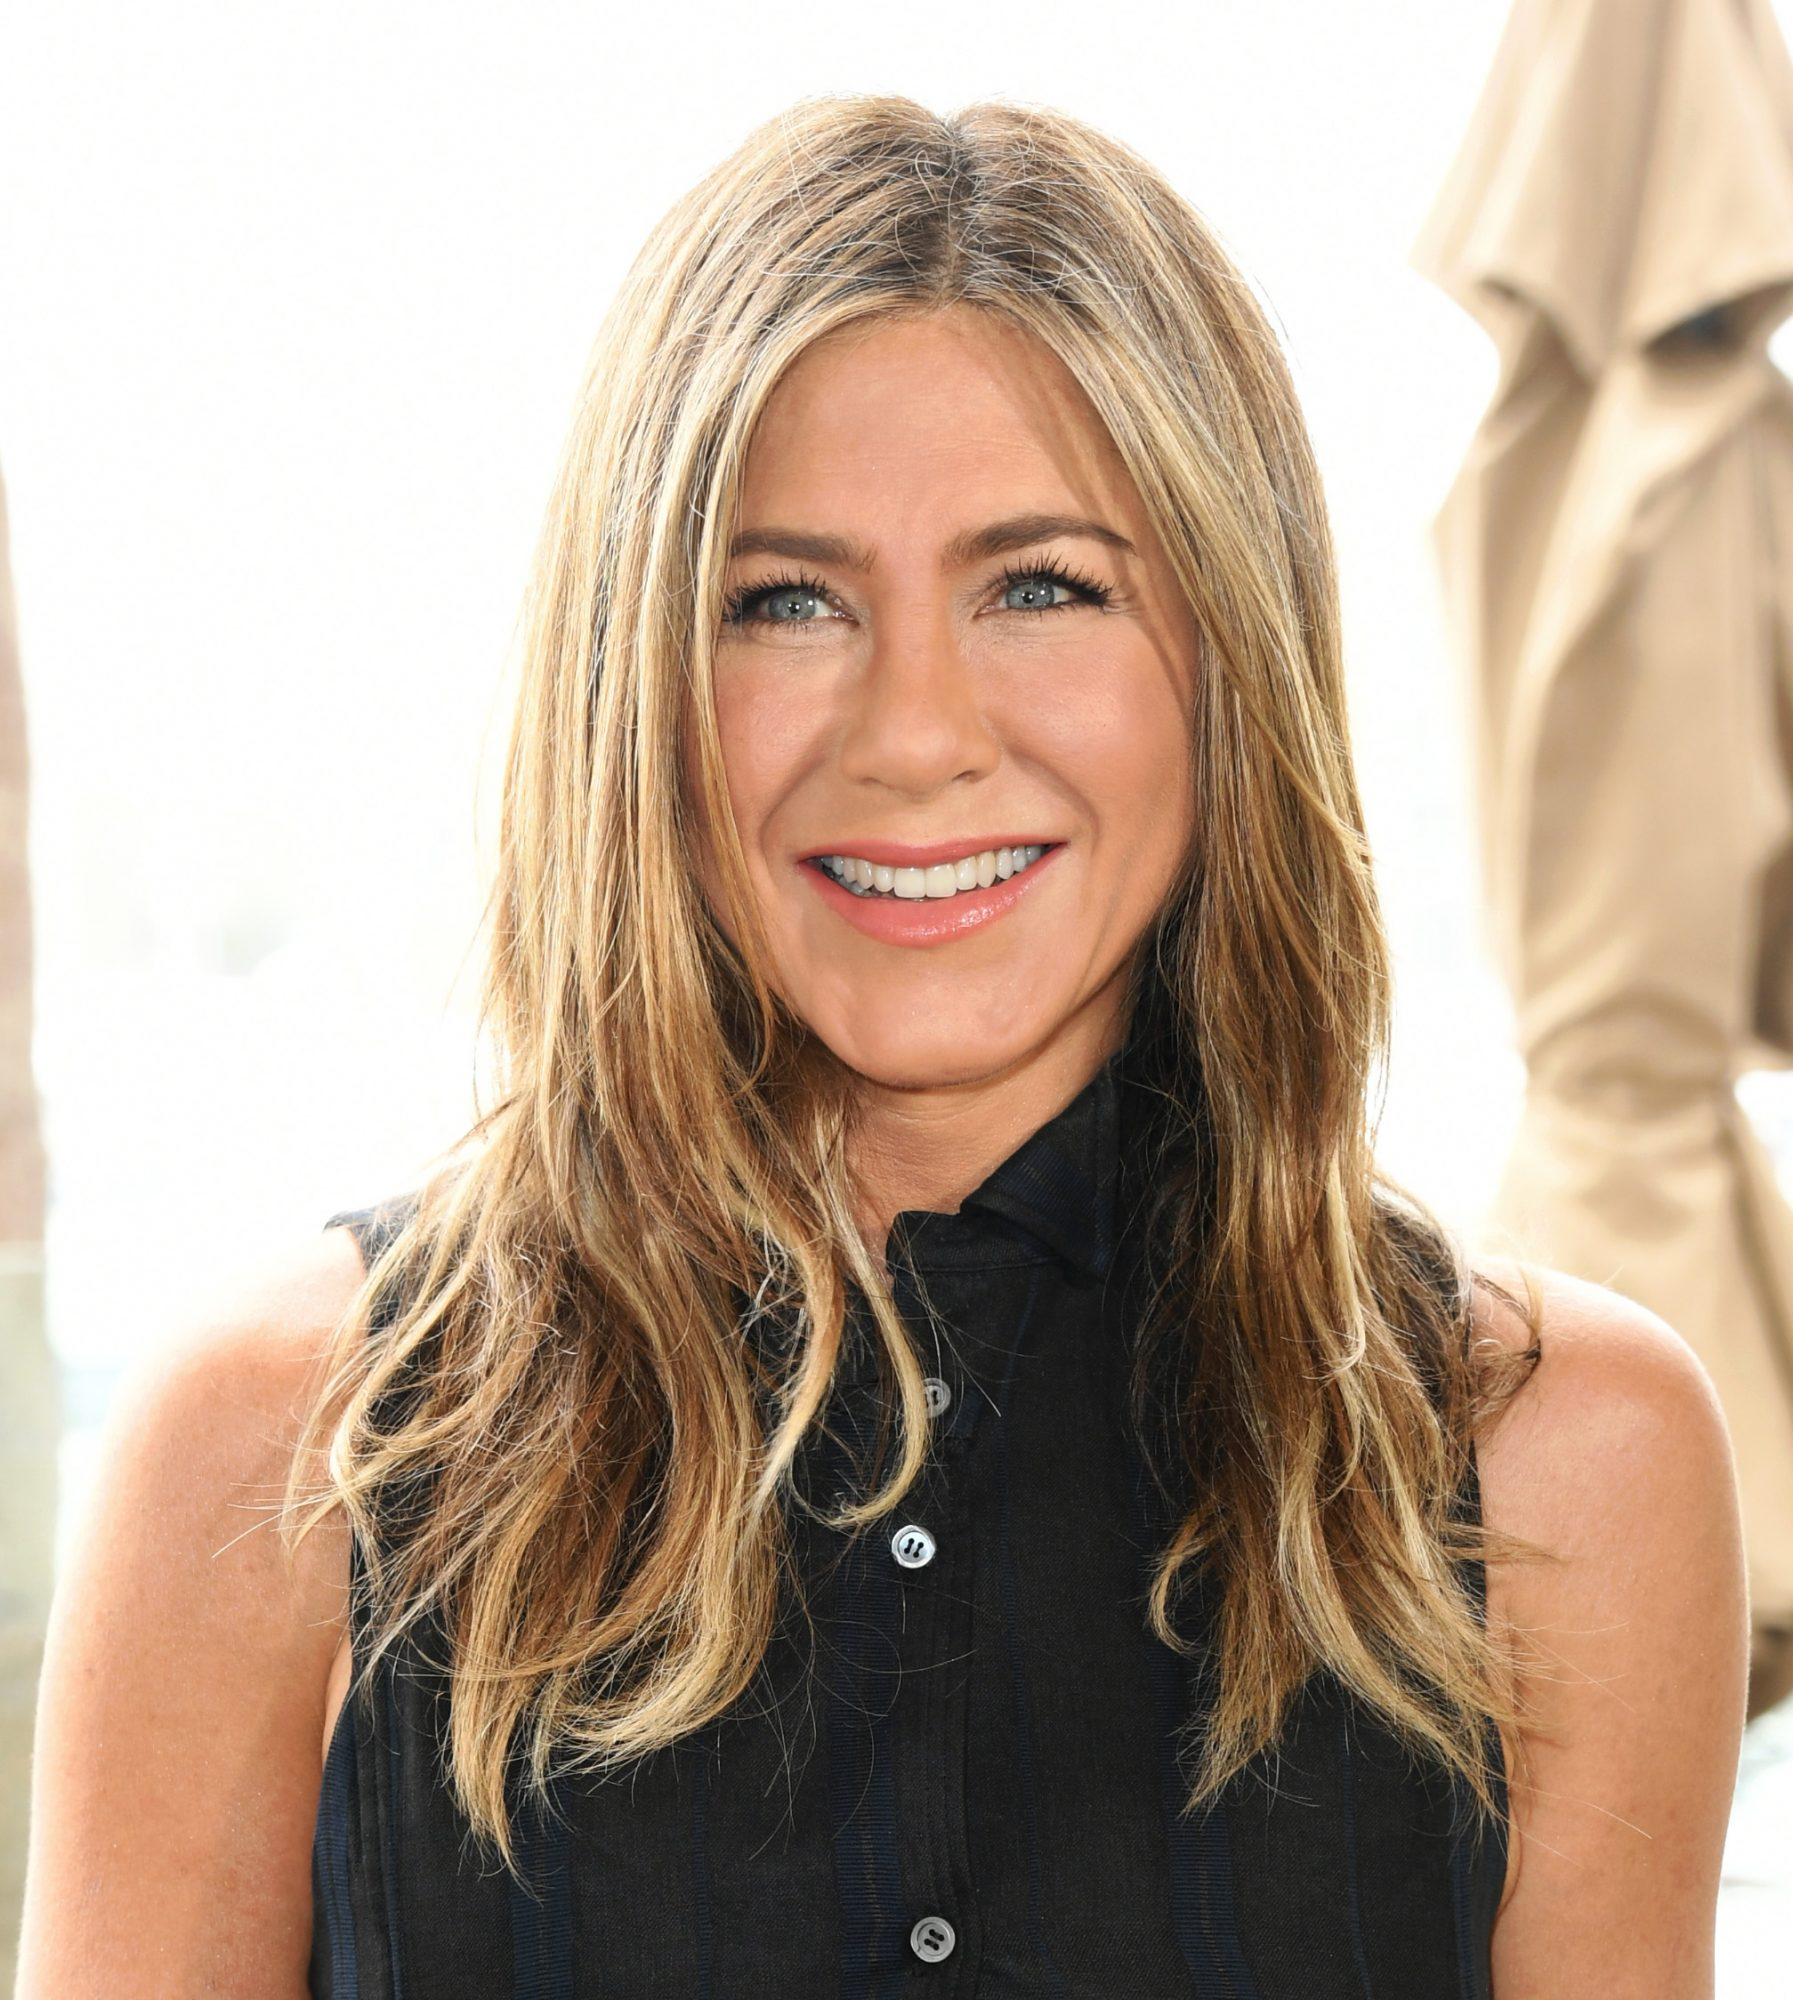 Jenifer Aniston's Workout Routine Is Scary Hard